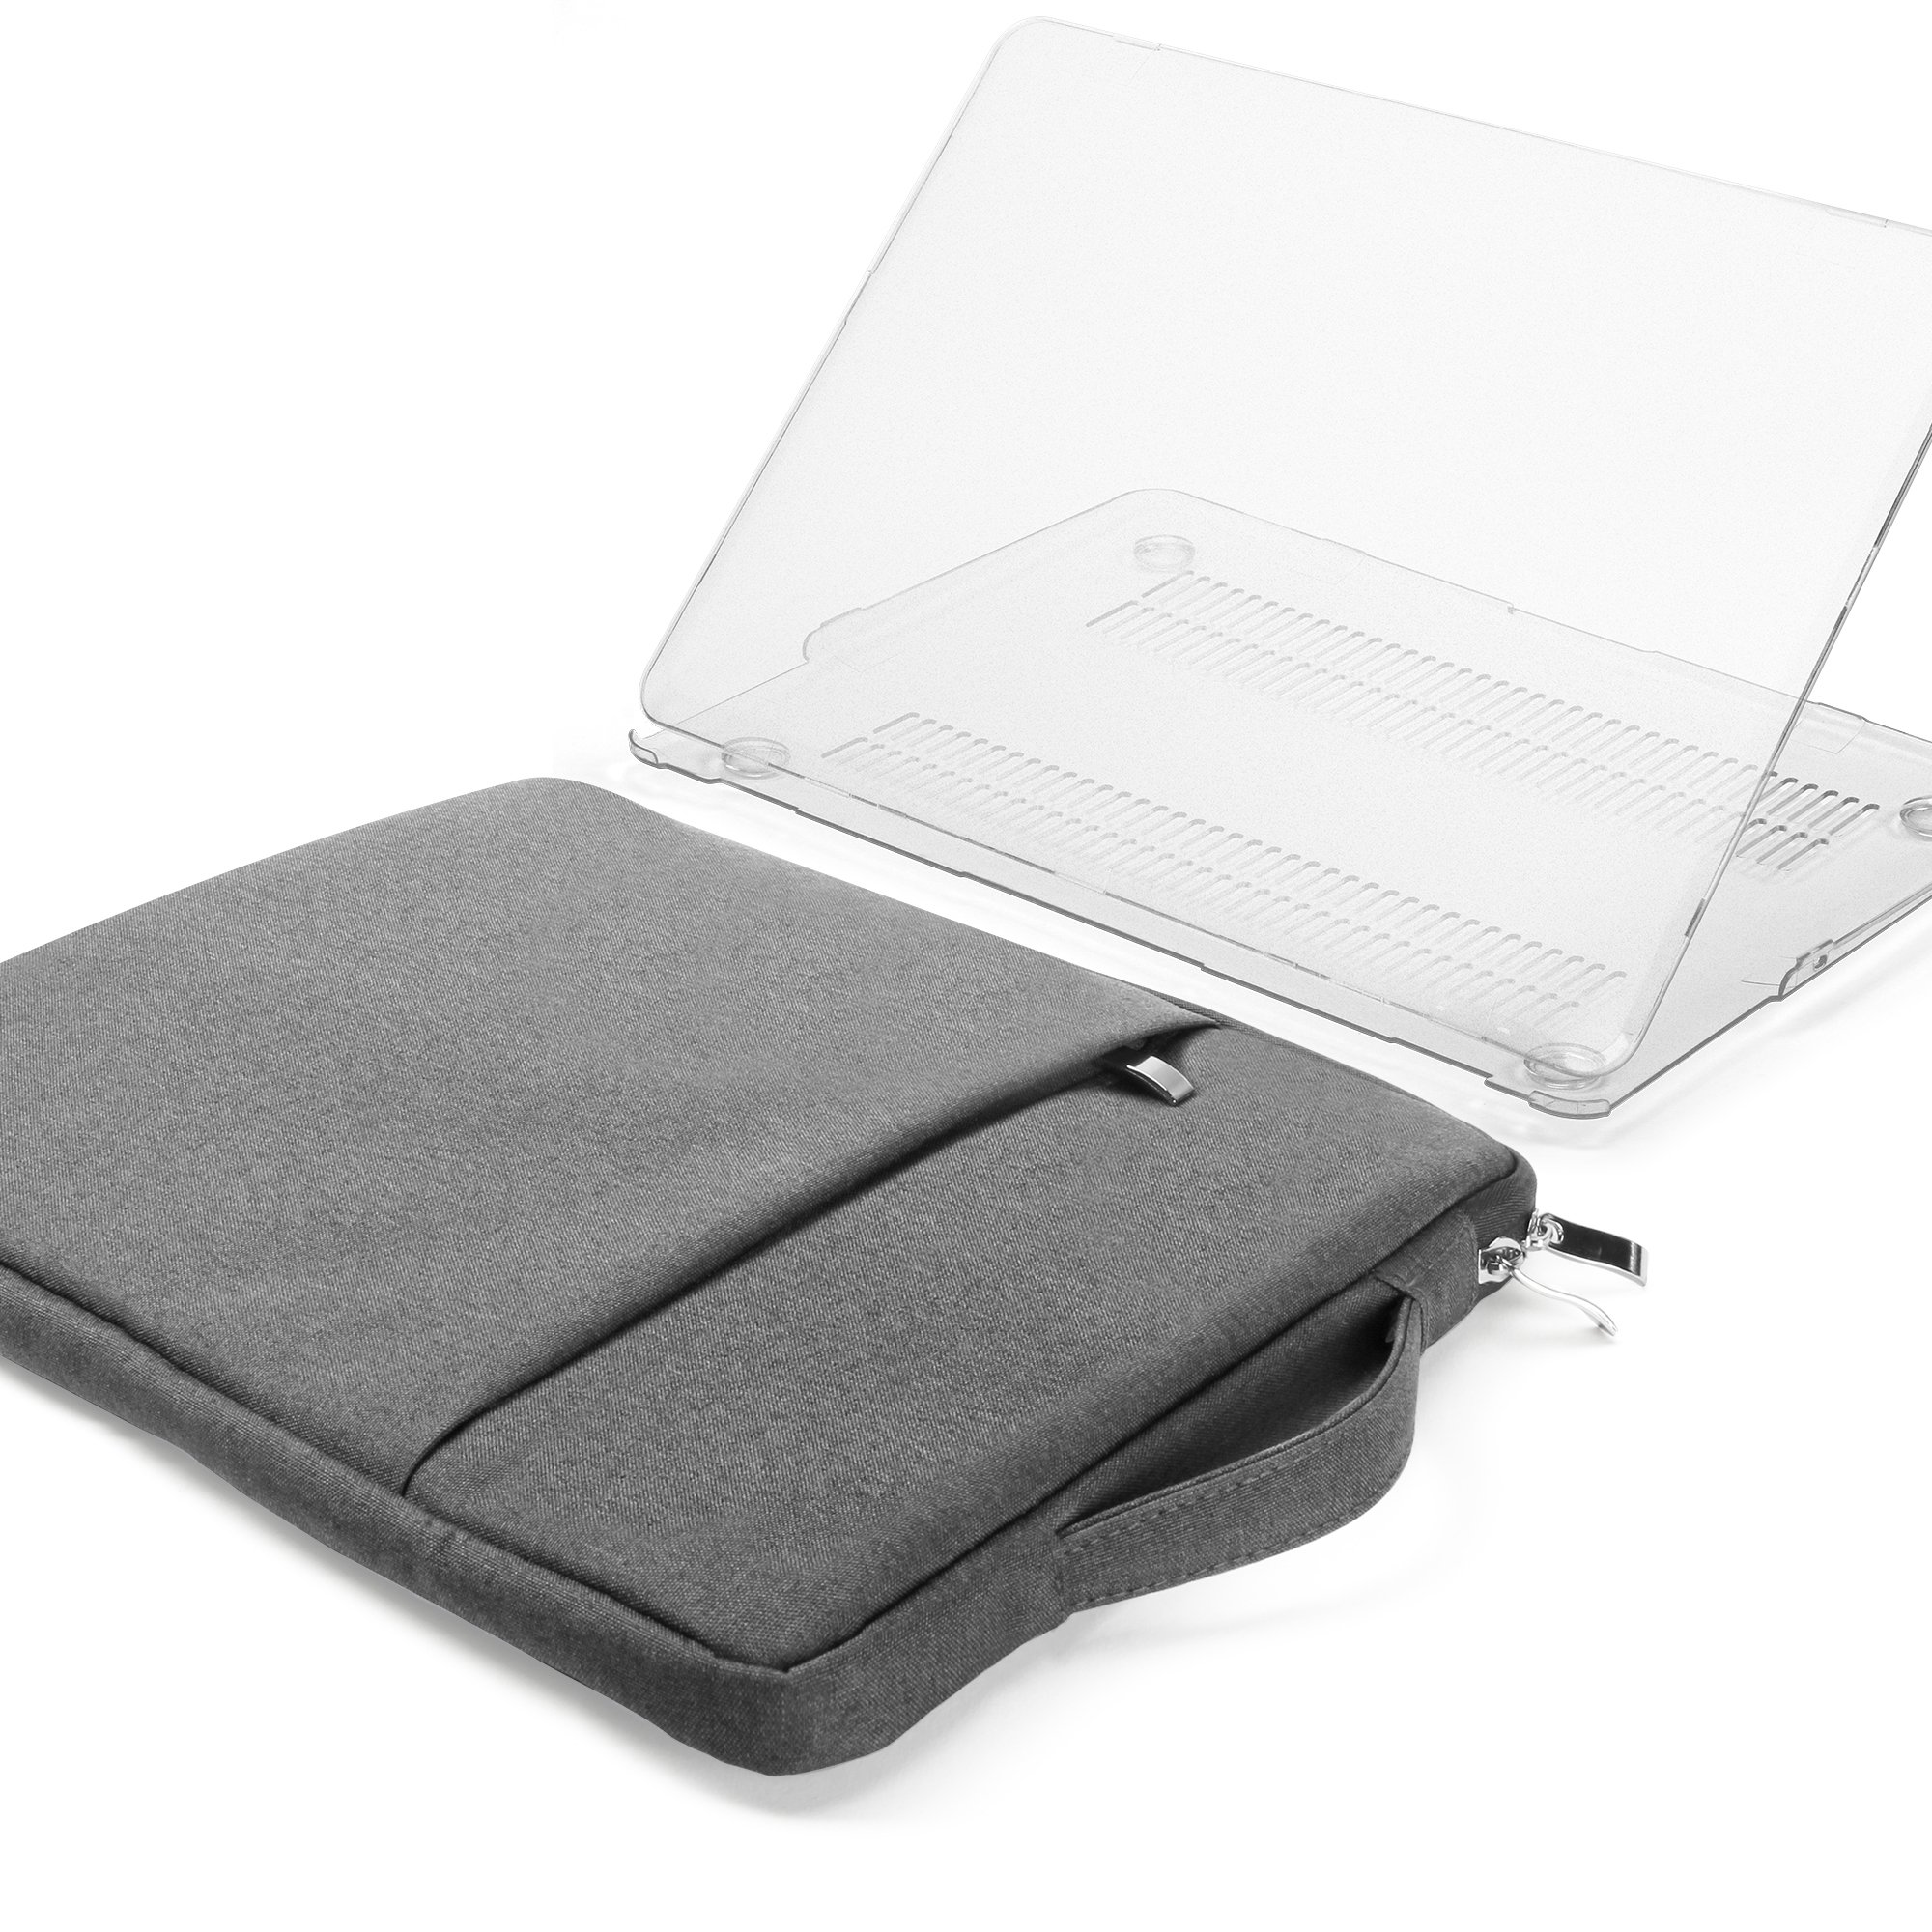 GMYLE 2 in 1 Bundle Clear Transparent See Through Soft-Touch Matte Plastic Hard Case for Macbook Air 13 inch (Model:A1369/ A1466) and 13-13.3 inch Water Resistant Protective Laptop Bag Sleeve, Grey